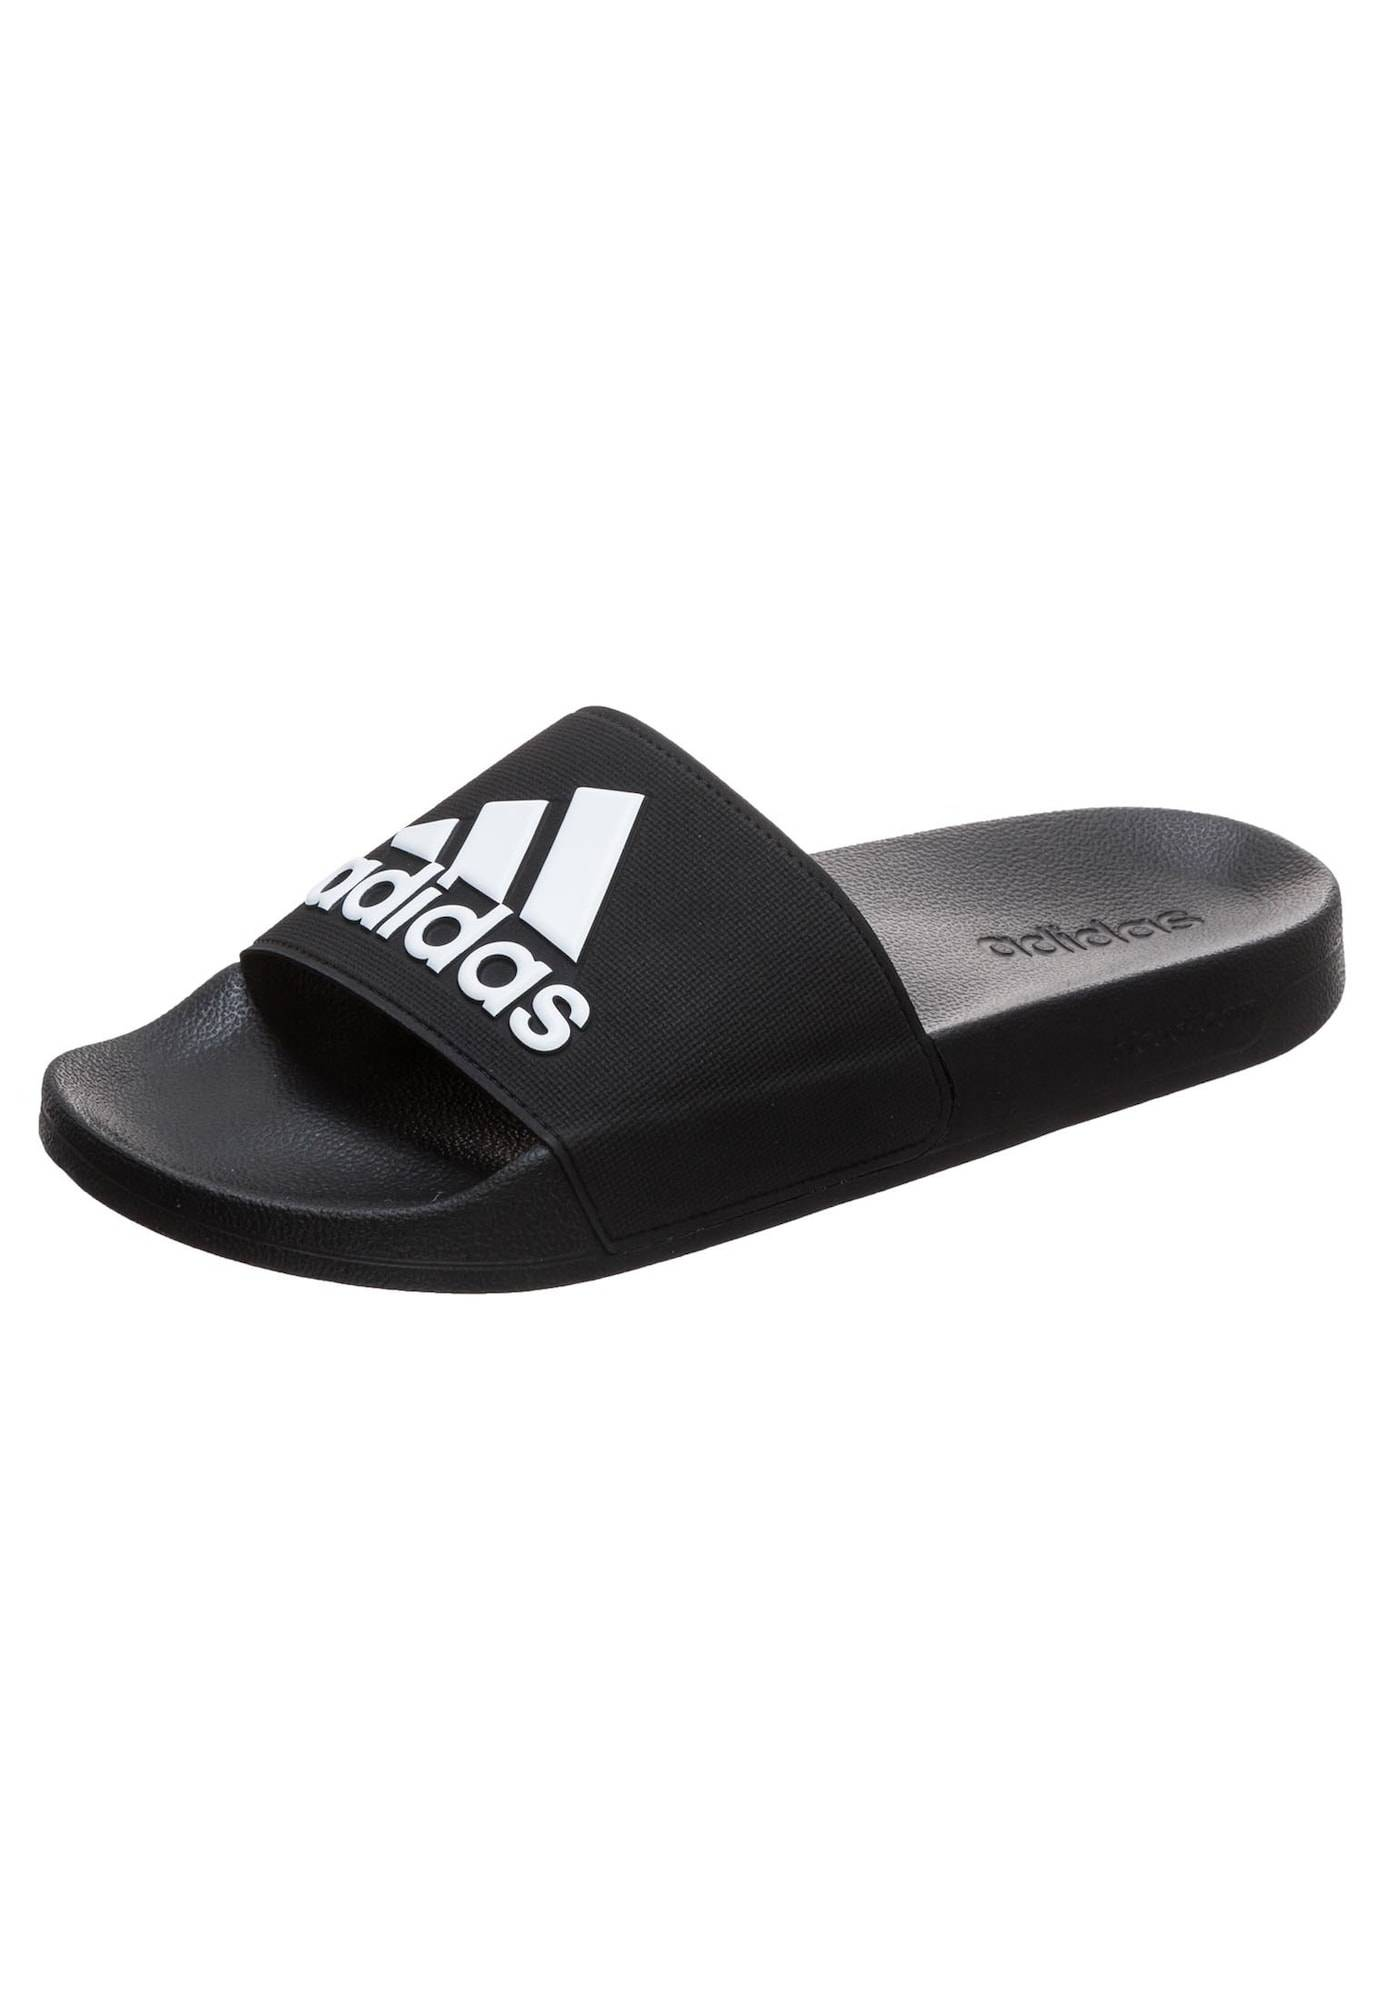 ADIDAS PERFORMANCE Claquettes / Tongs  - Noir - Taille: 40.5-41 - female